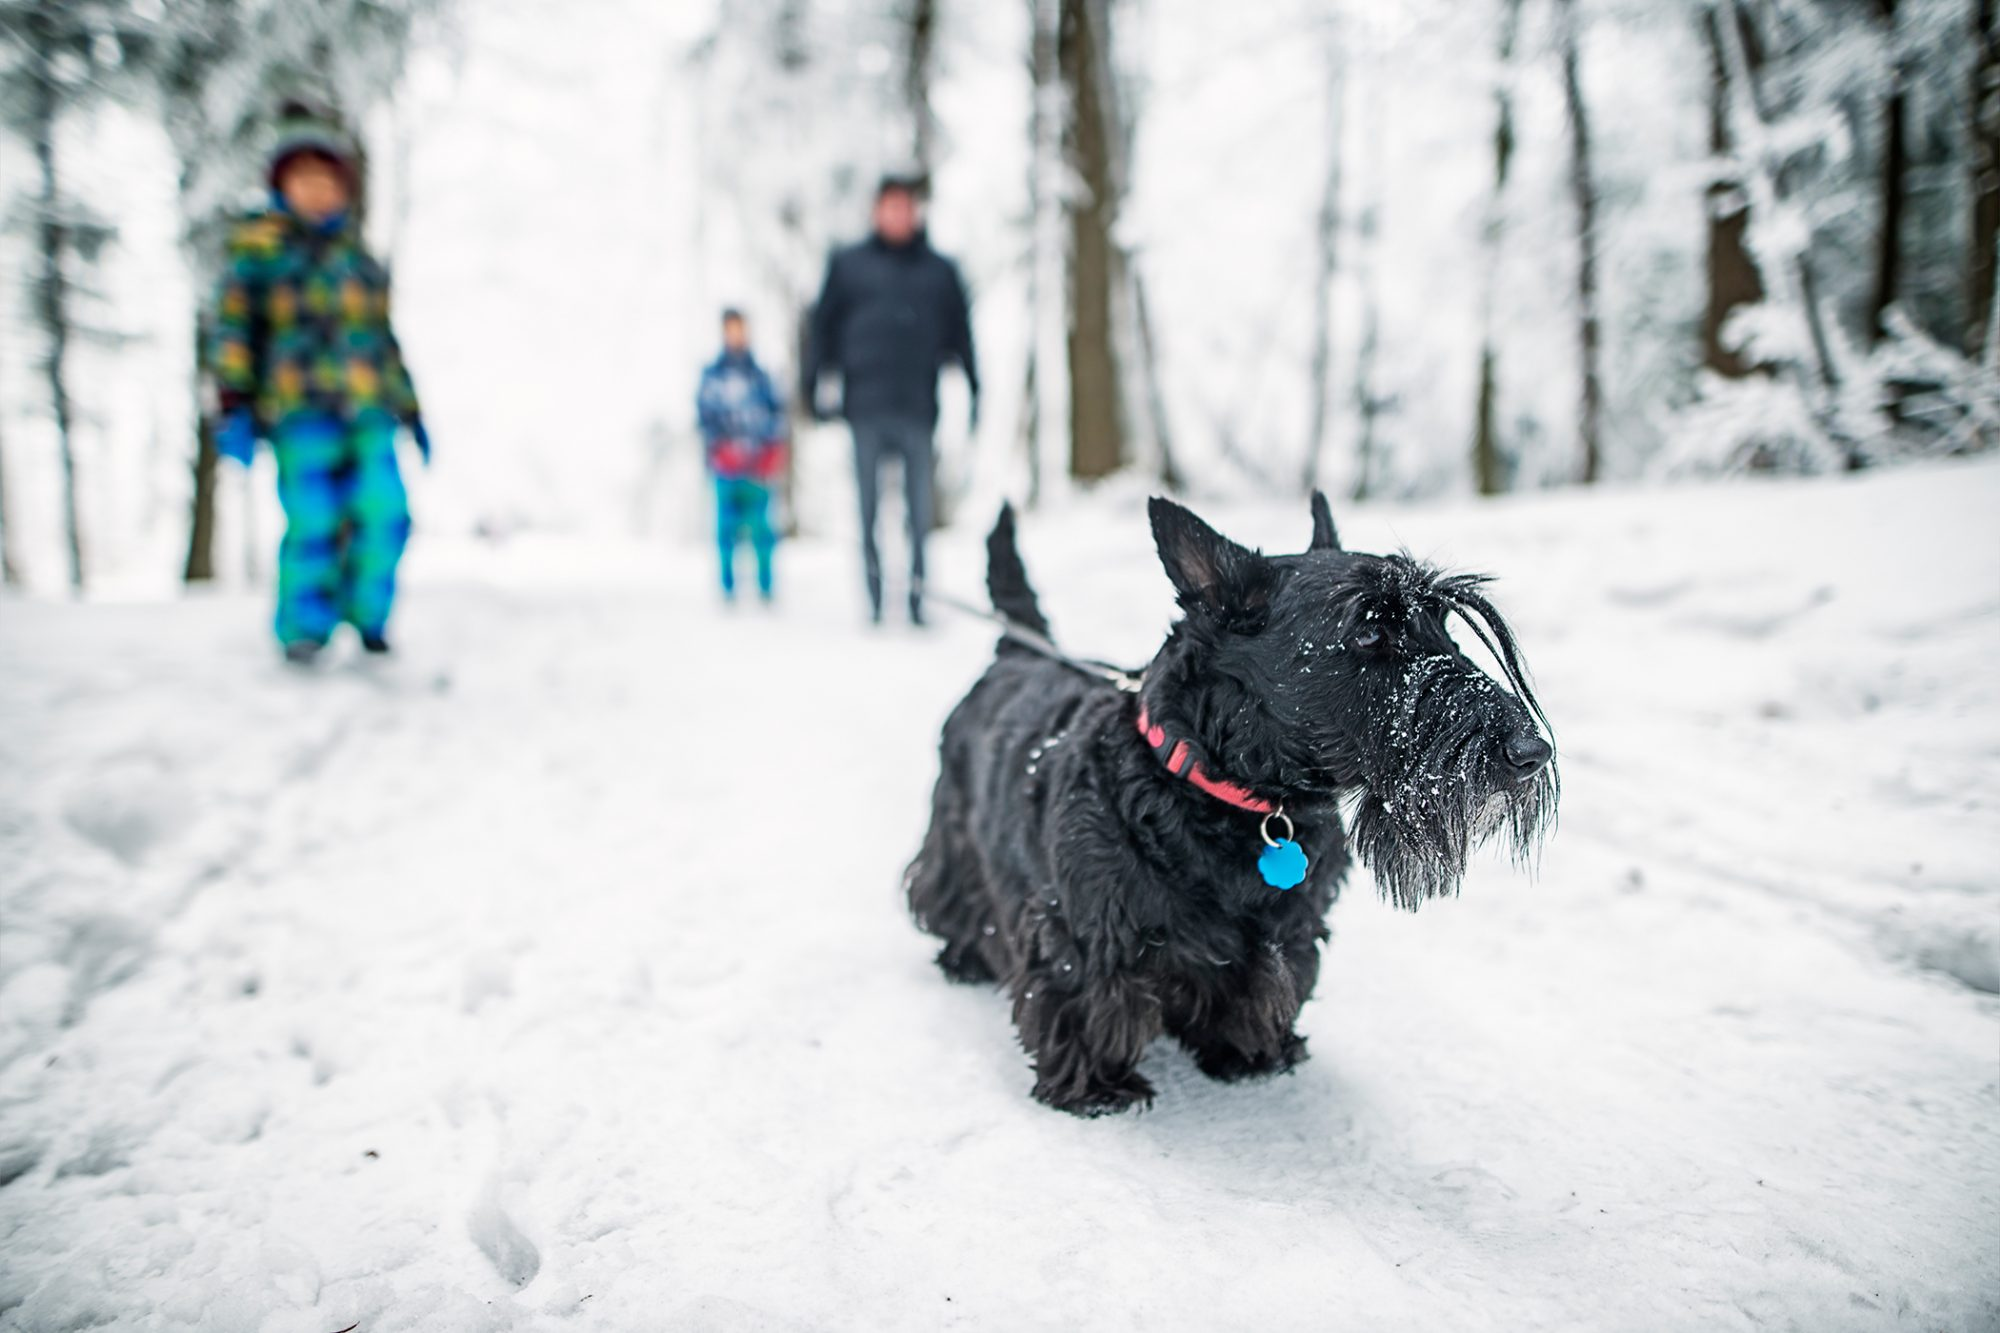 Black Scottish terrier stands on snowy path